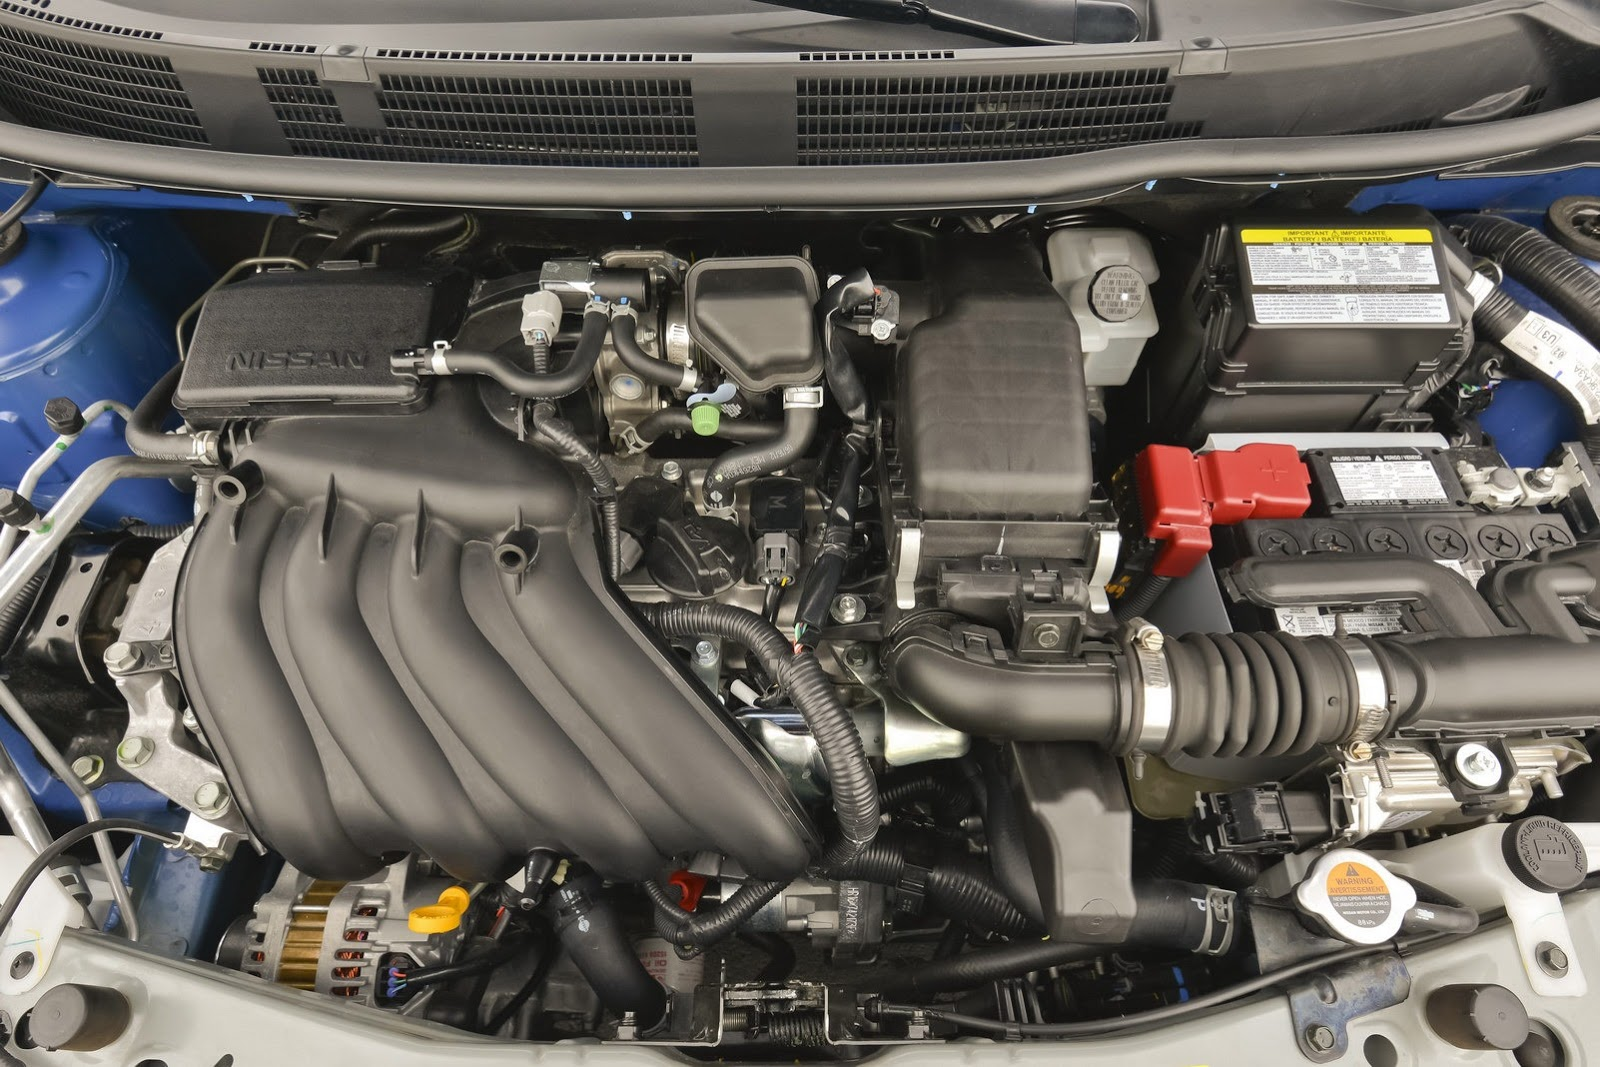 2013 Nissan Pathfinder Fuse Diagram 2014 Nissan Versa Details And Pricing Autoevolution